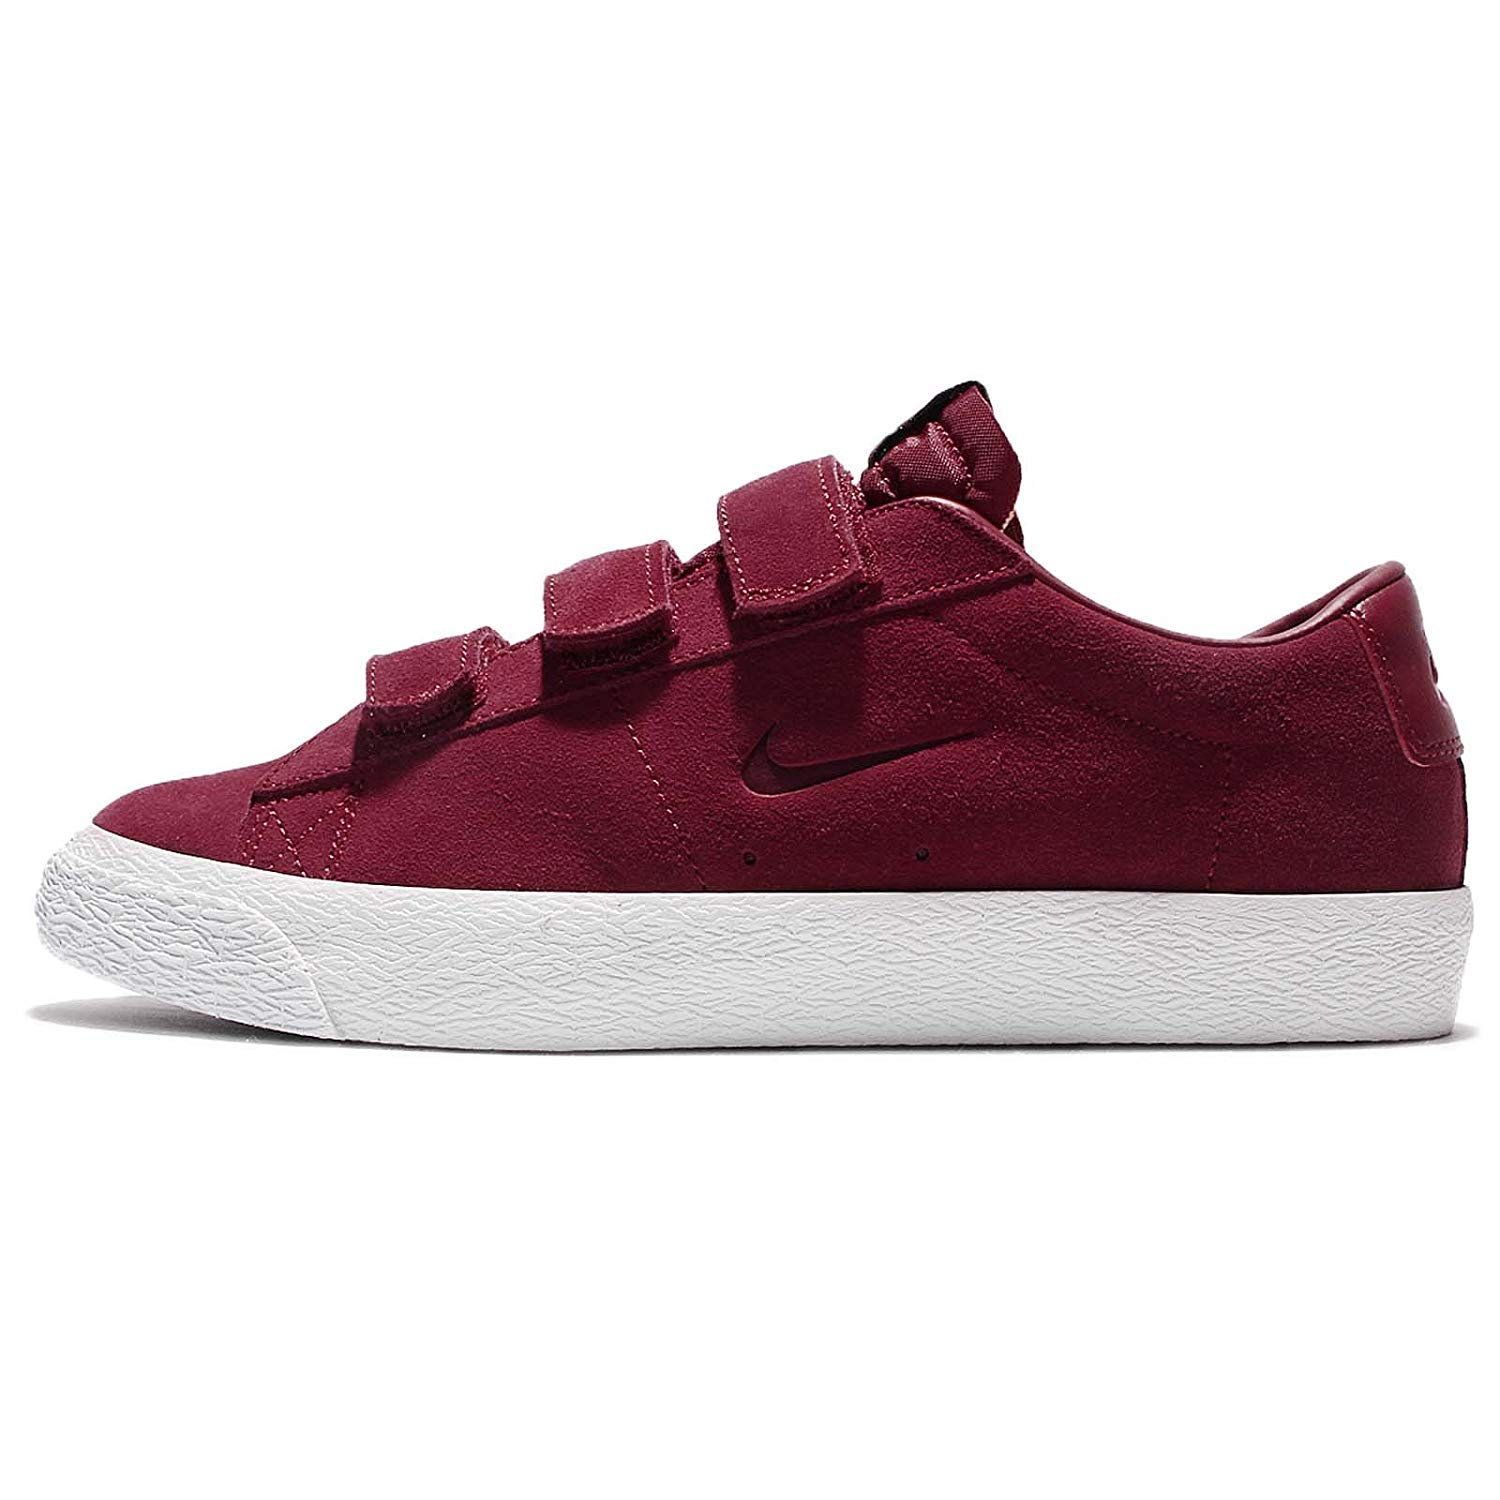 9a40612712a79 Nike SB Zoom Blazer Low AC QS Hommes 921739 Sneakers Chaussures  Amazon.fr   Chaussures et Sacs